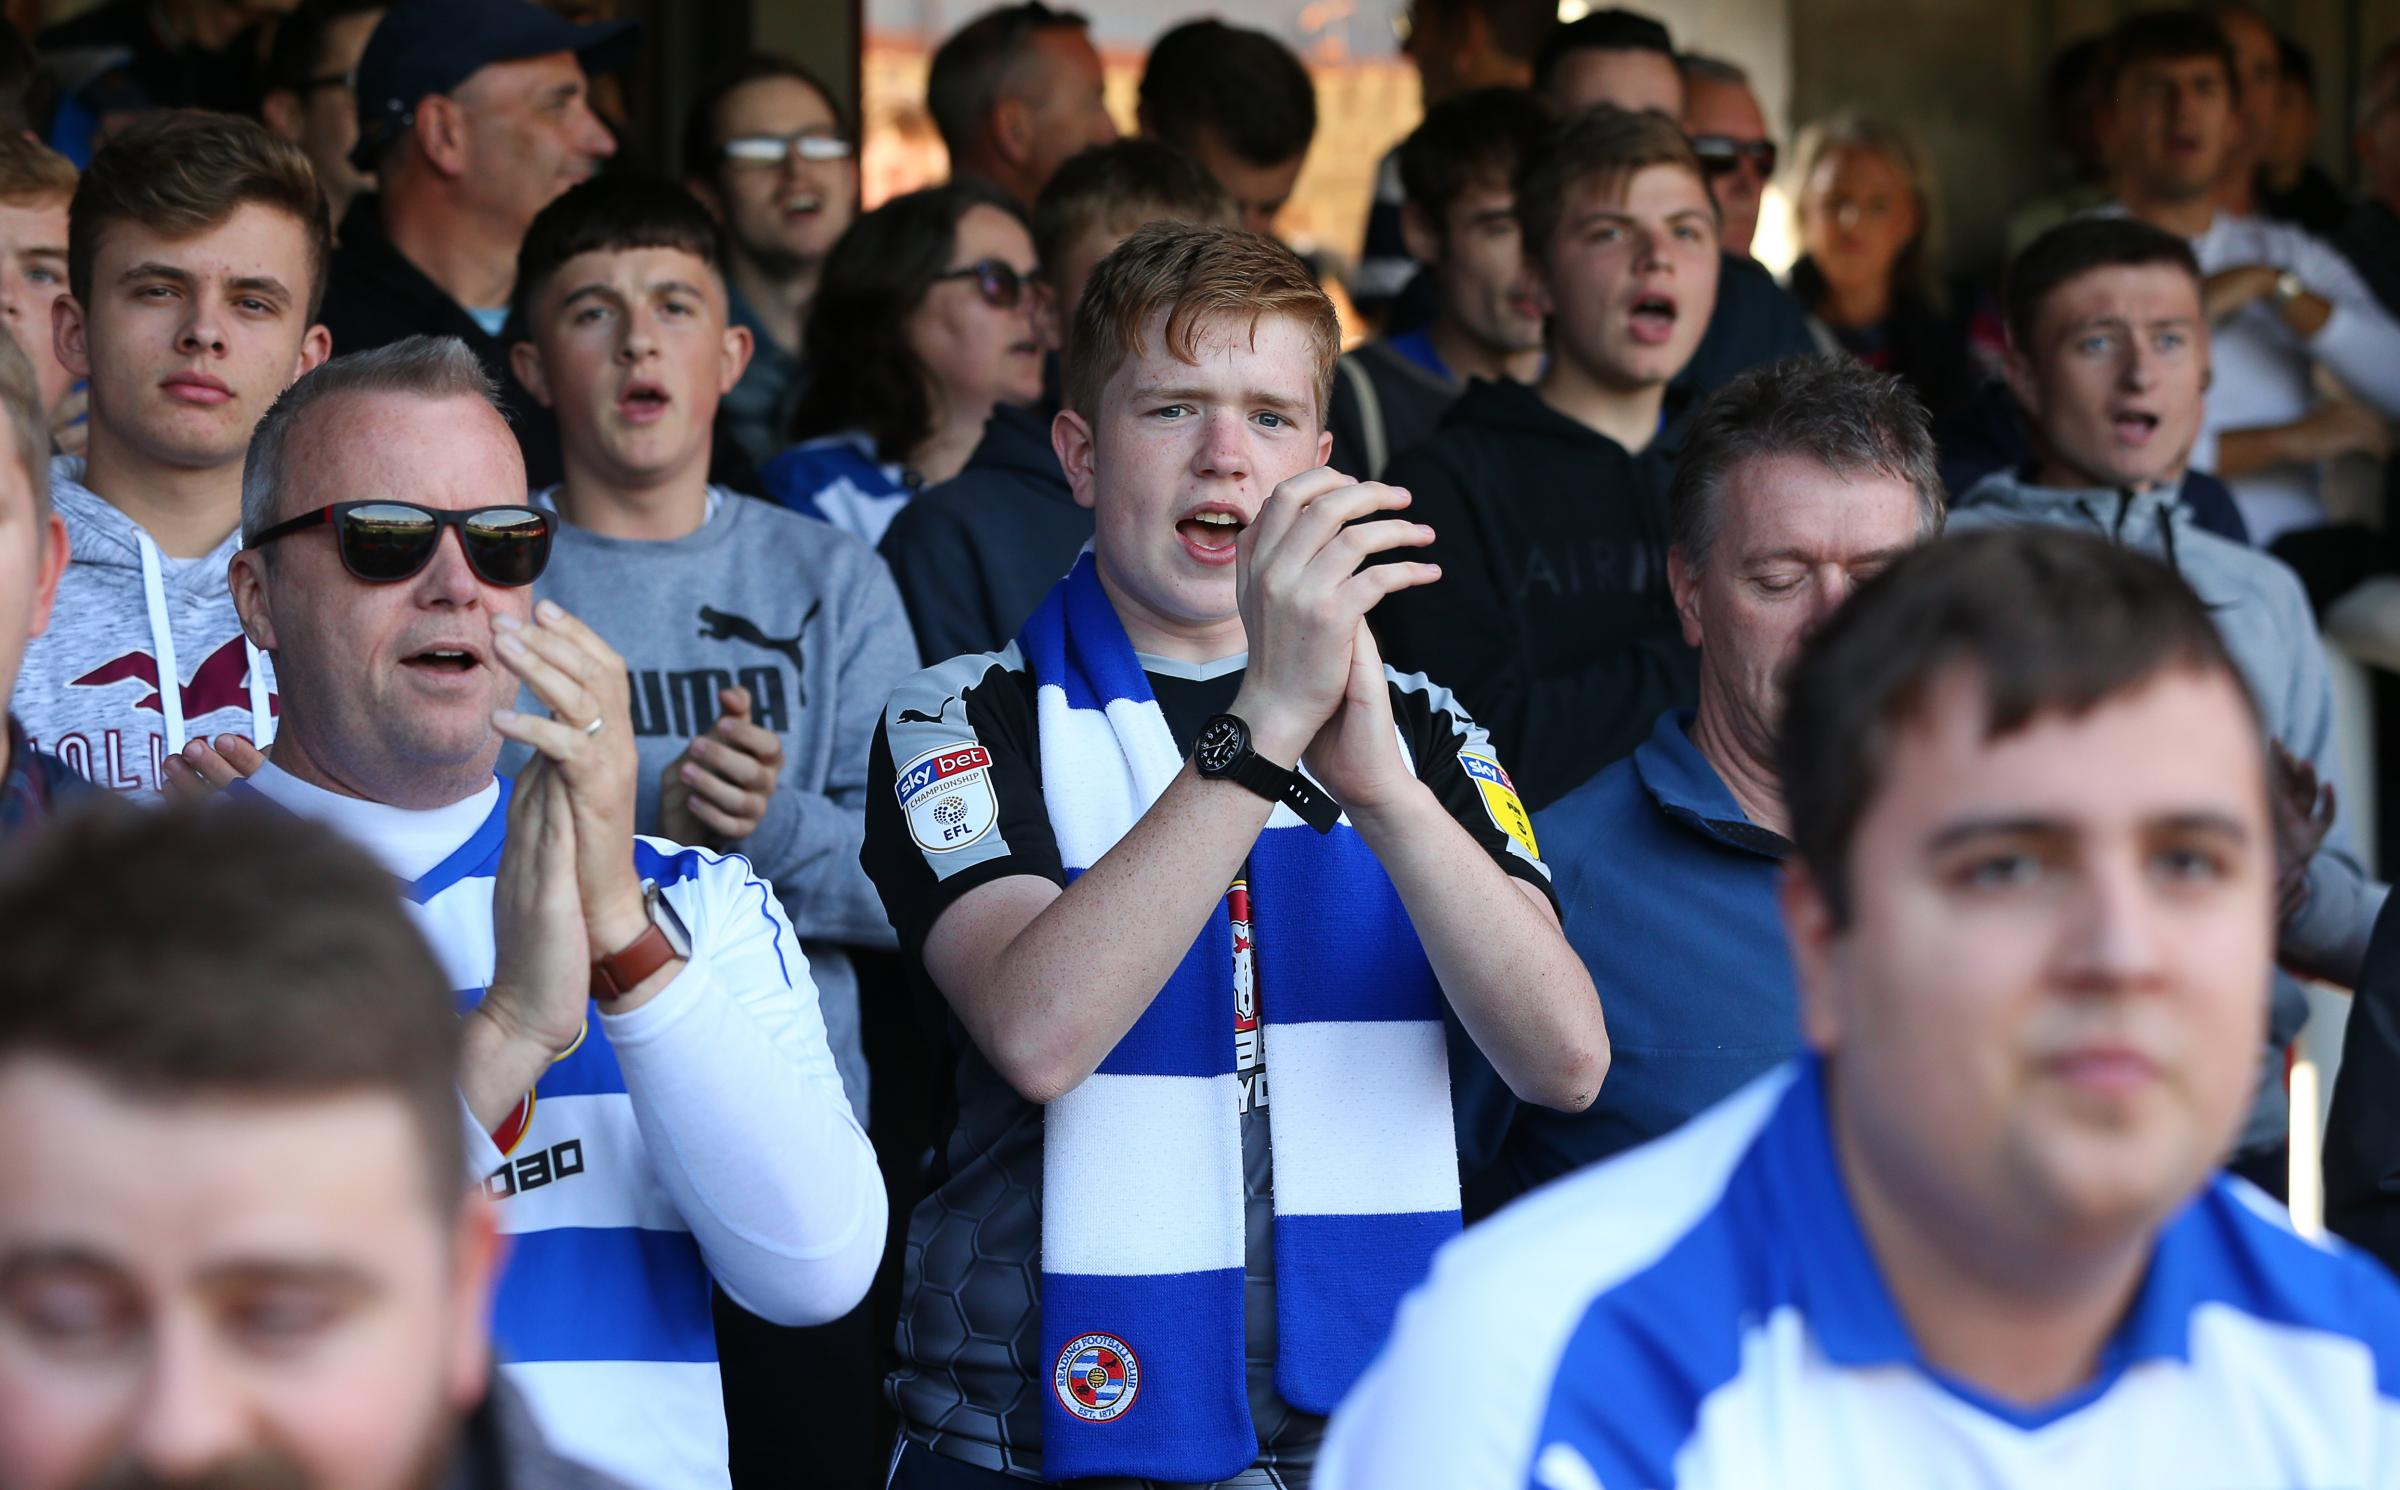 Reading FC fans cheering on the team - stock image